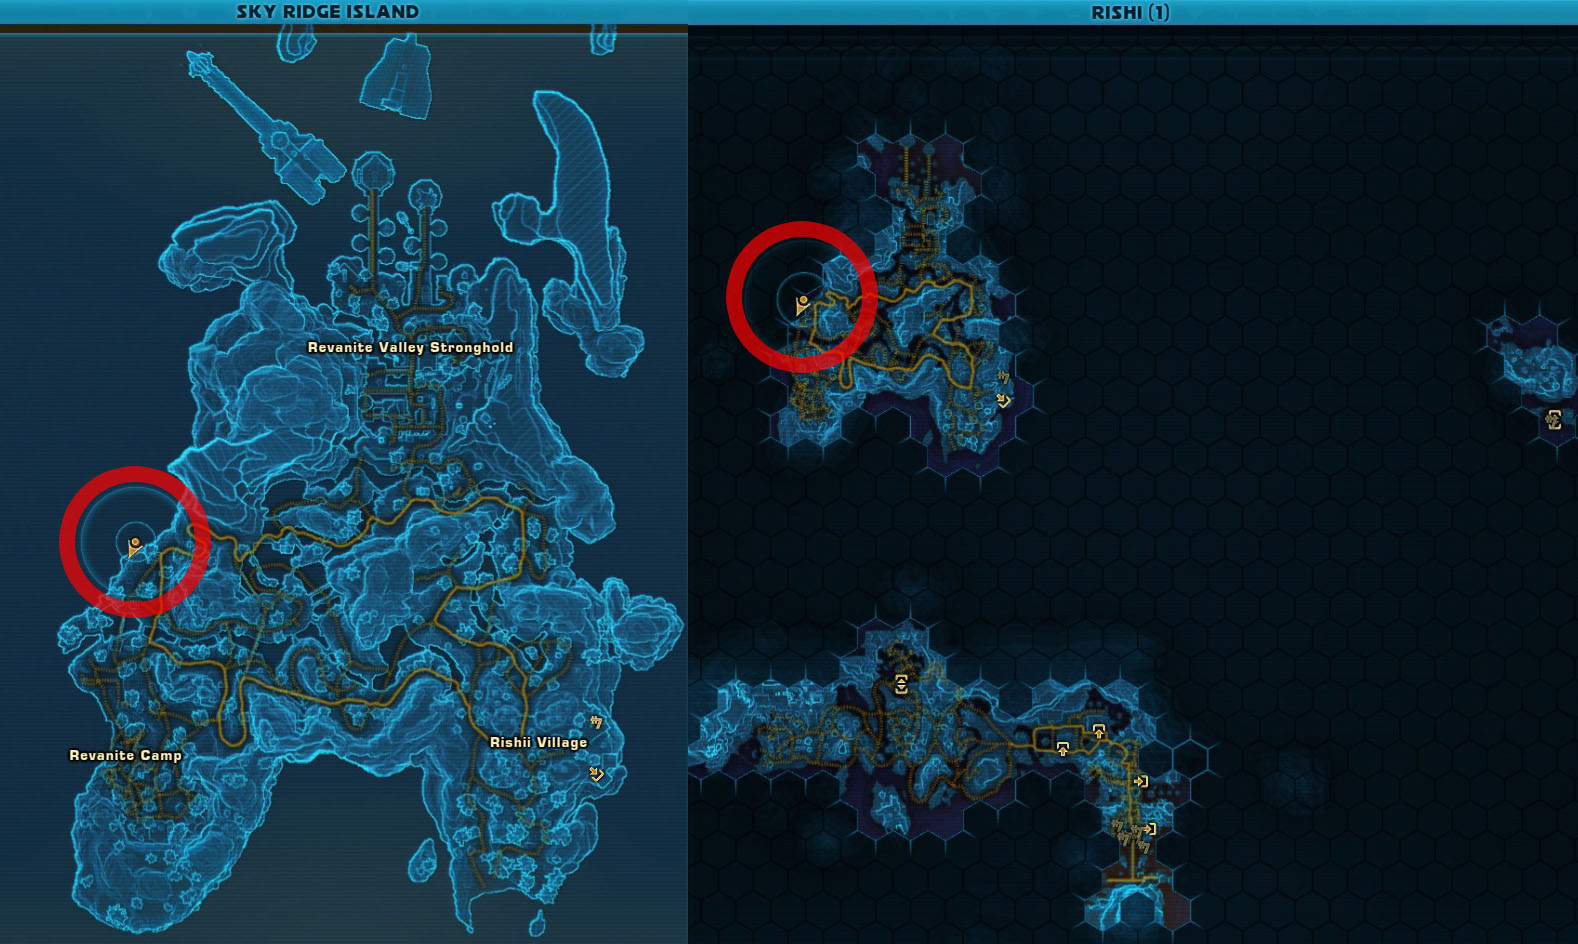 Swtor Shadow of Raven Rishi Datacrons Location